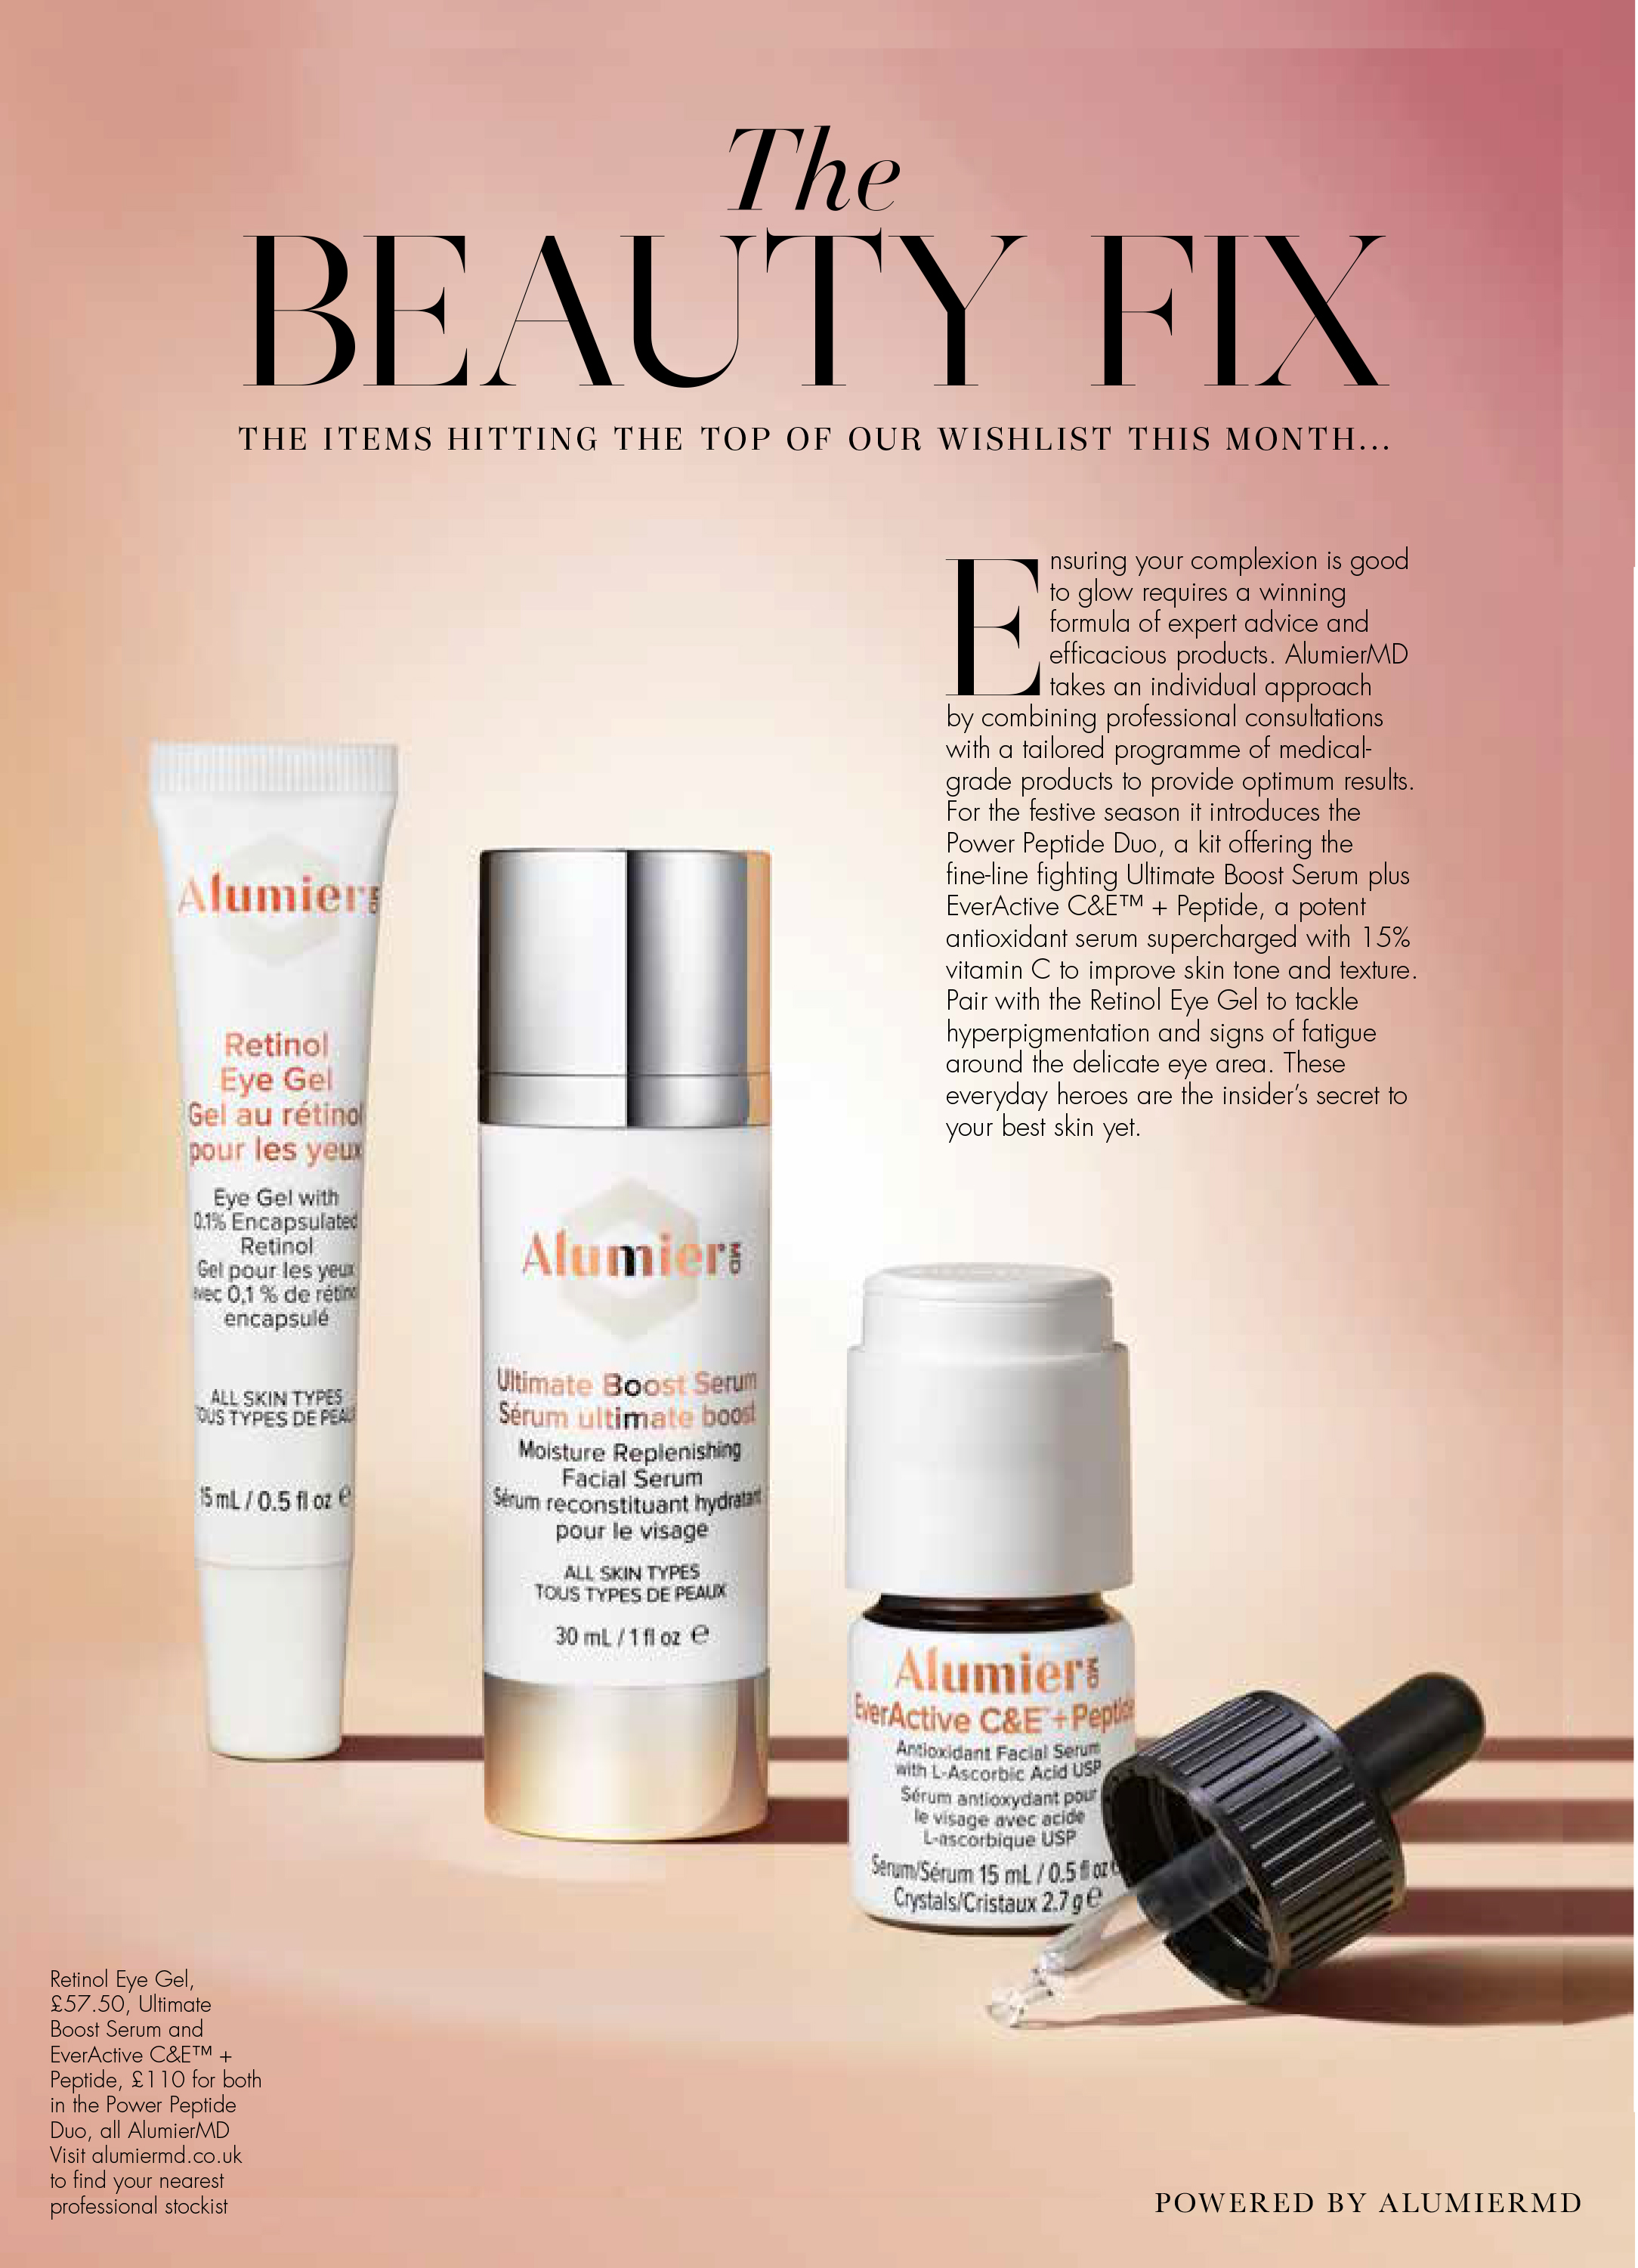 The Beauty Fix December 2020 issue